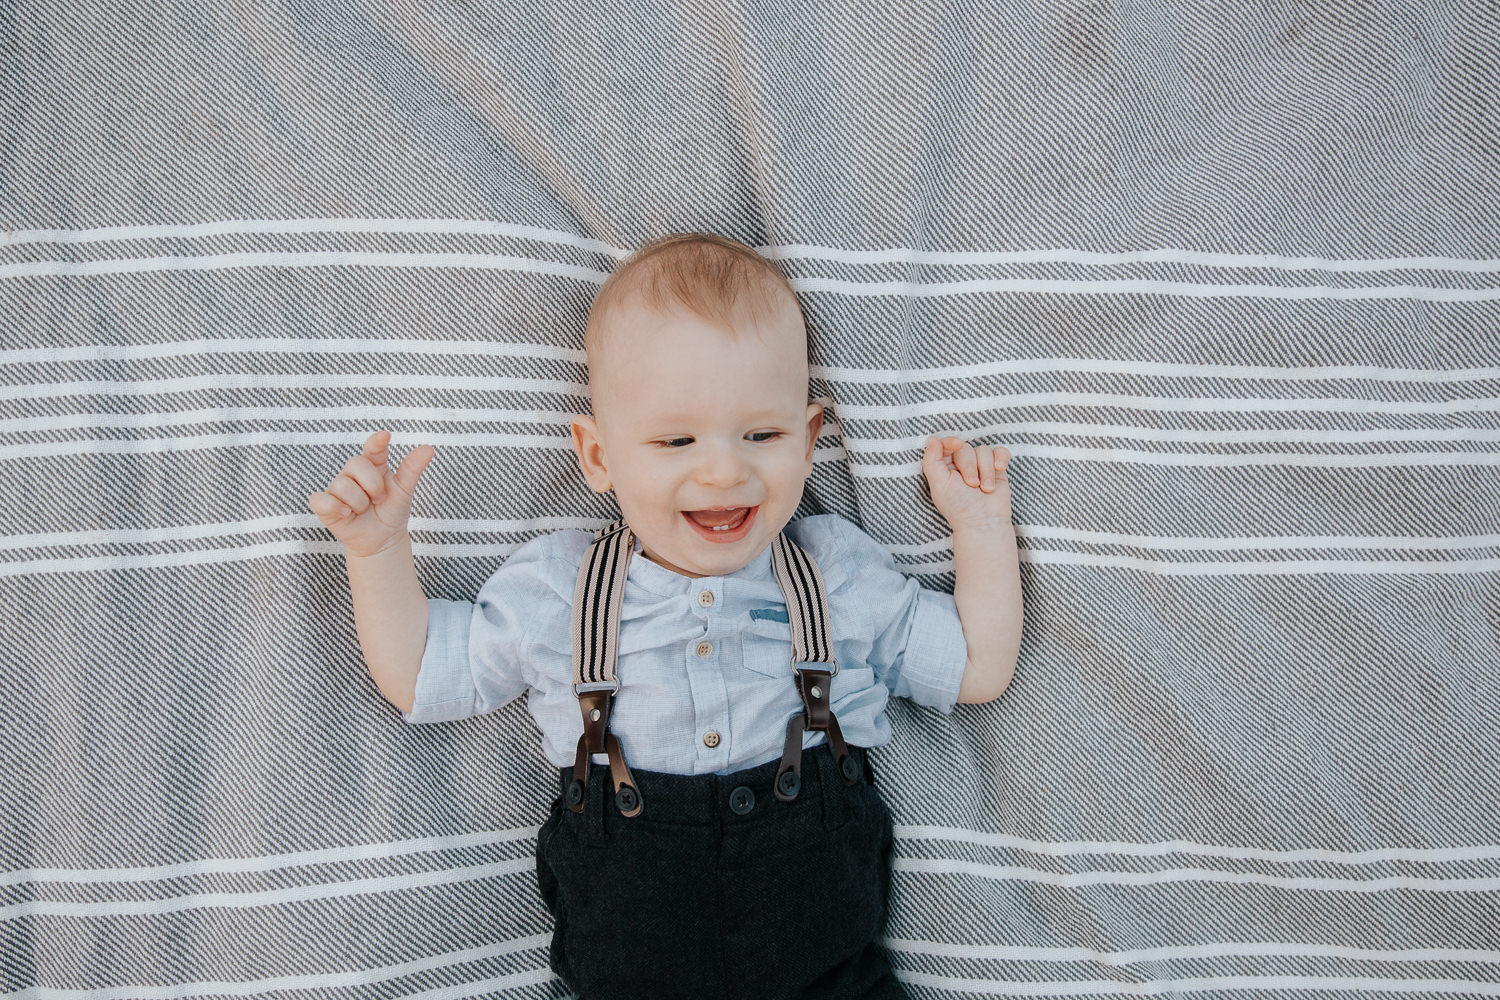 8 month old baby boy lying on grey and white striped blanket, arms in the air and laughing showing two bottom teeth - GTA Lifestyle Photography